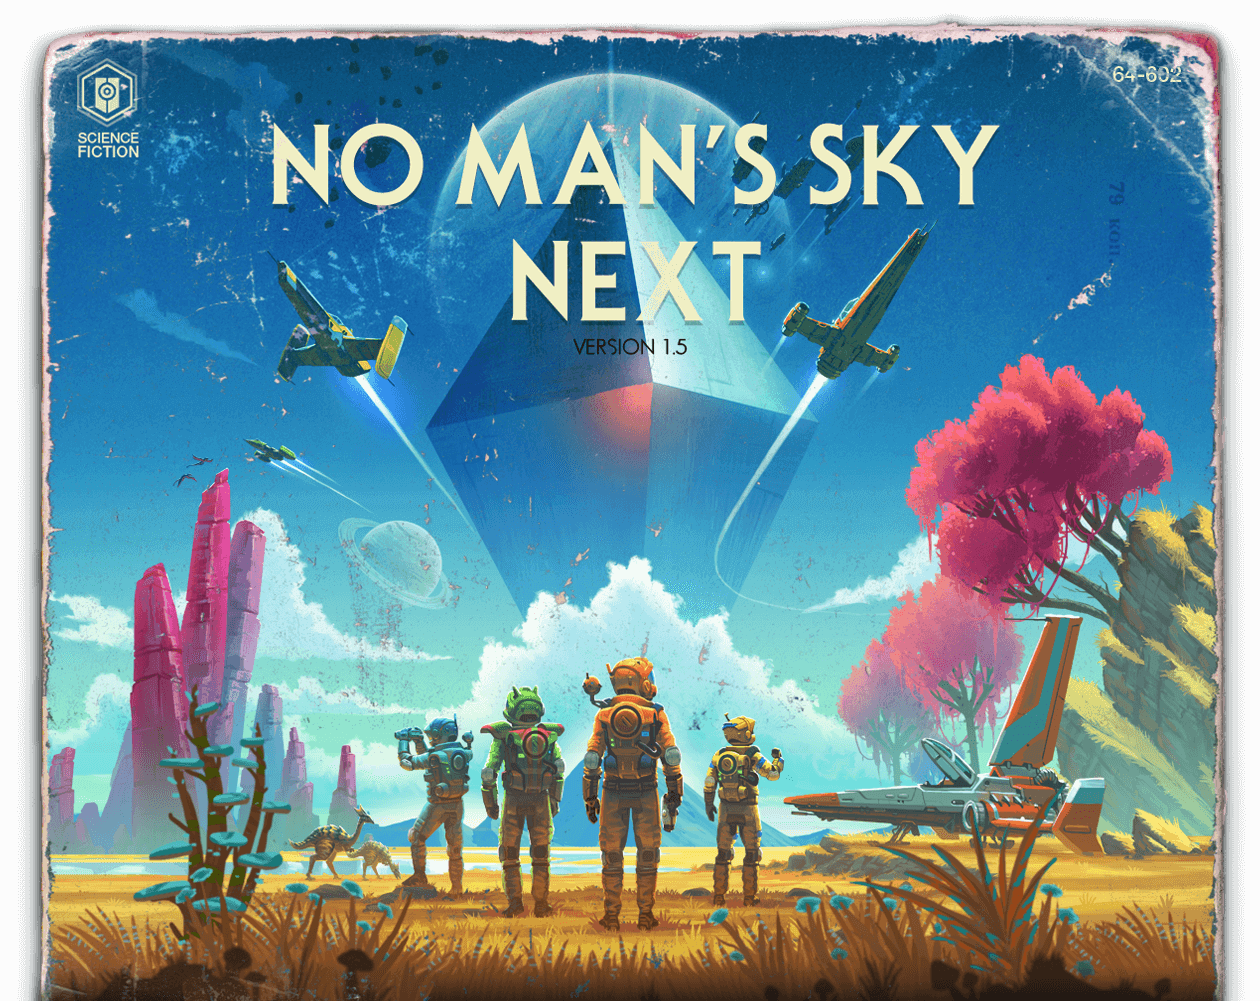 NEXT Update - No Man's Sky